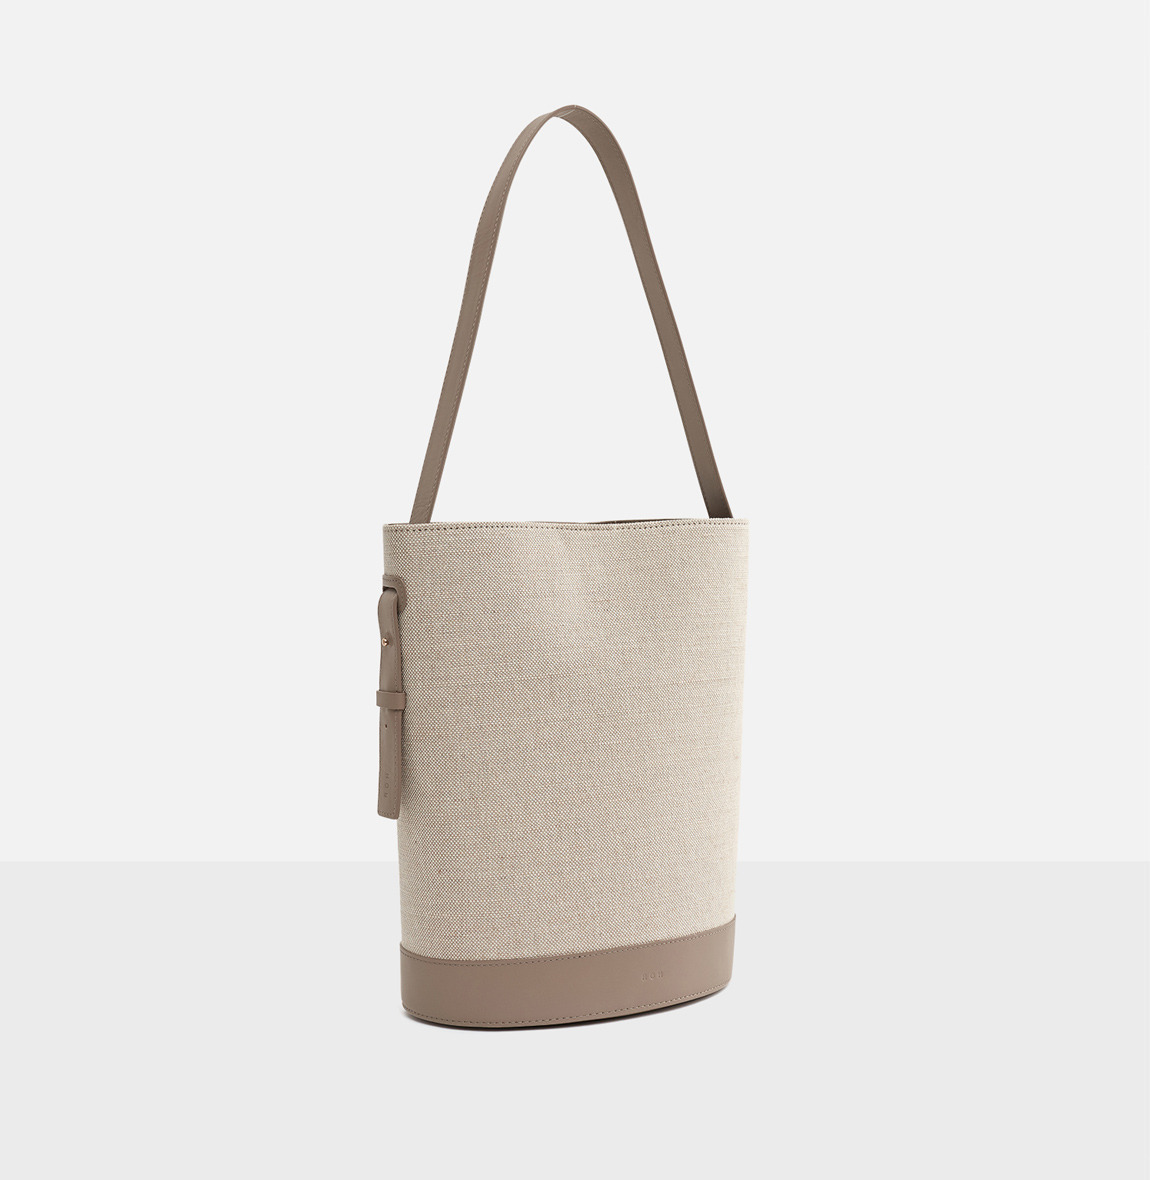 ROH Juty shoulder bag Beige